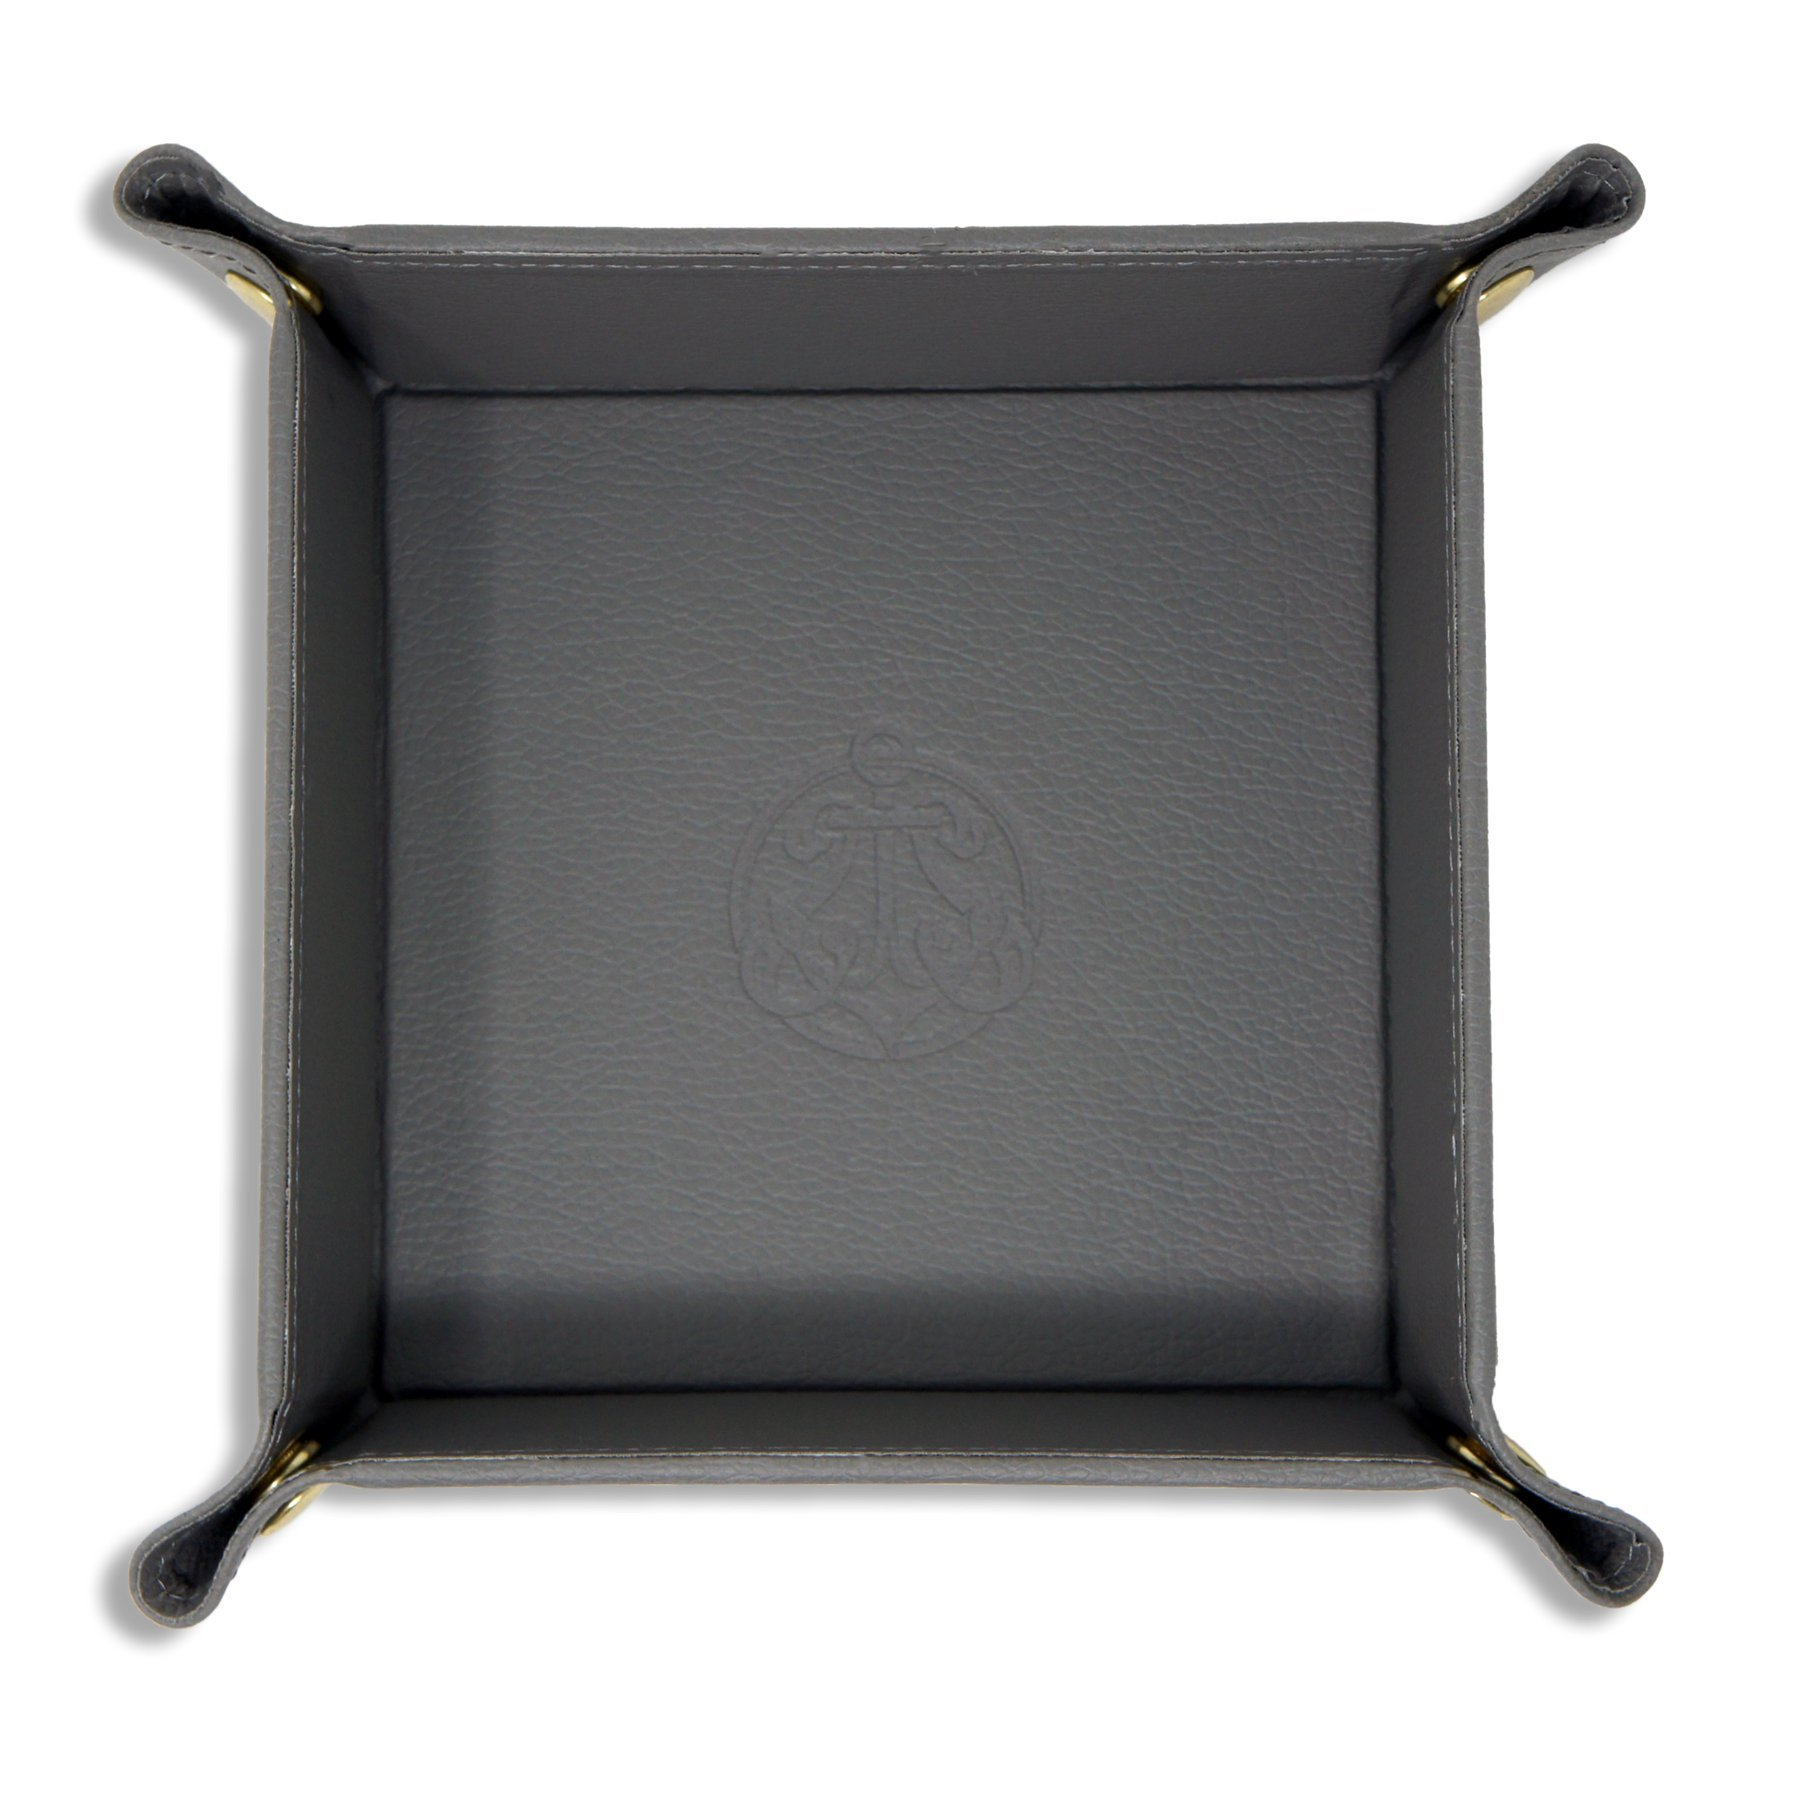 SIVEL + SHARP Leather Valet Tray - Embossed Catchall Tray with Brass Snaps (Gray)